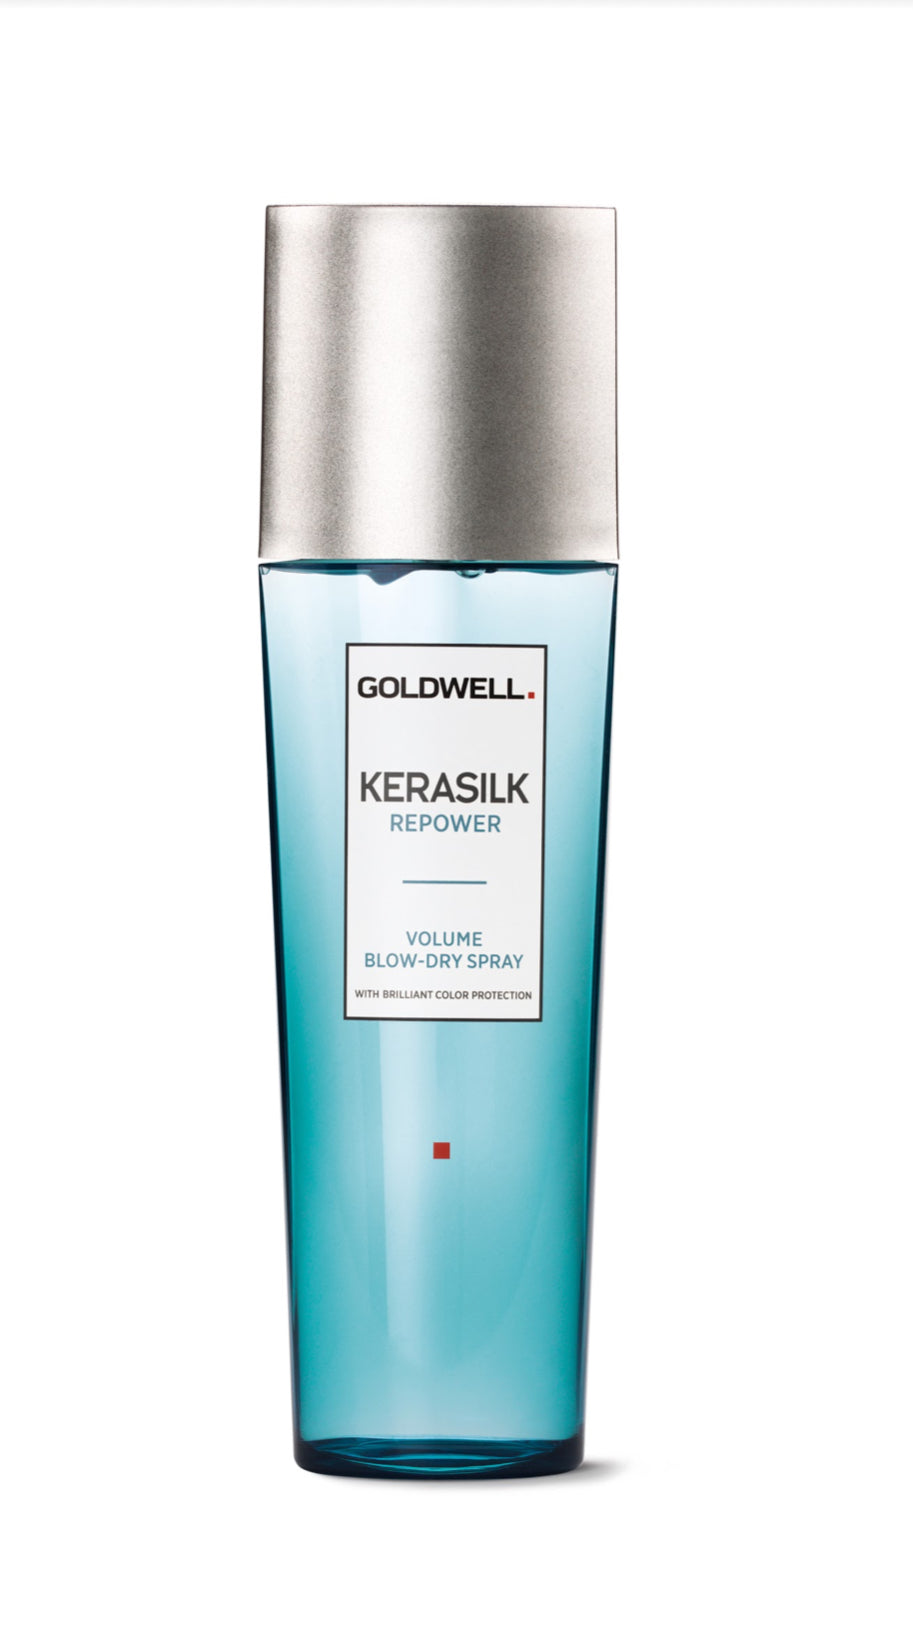 Kerasilk Repower Volume Blow-dry Spray. (125 ml)